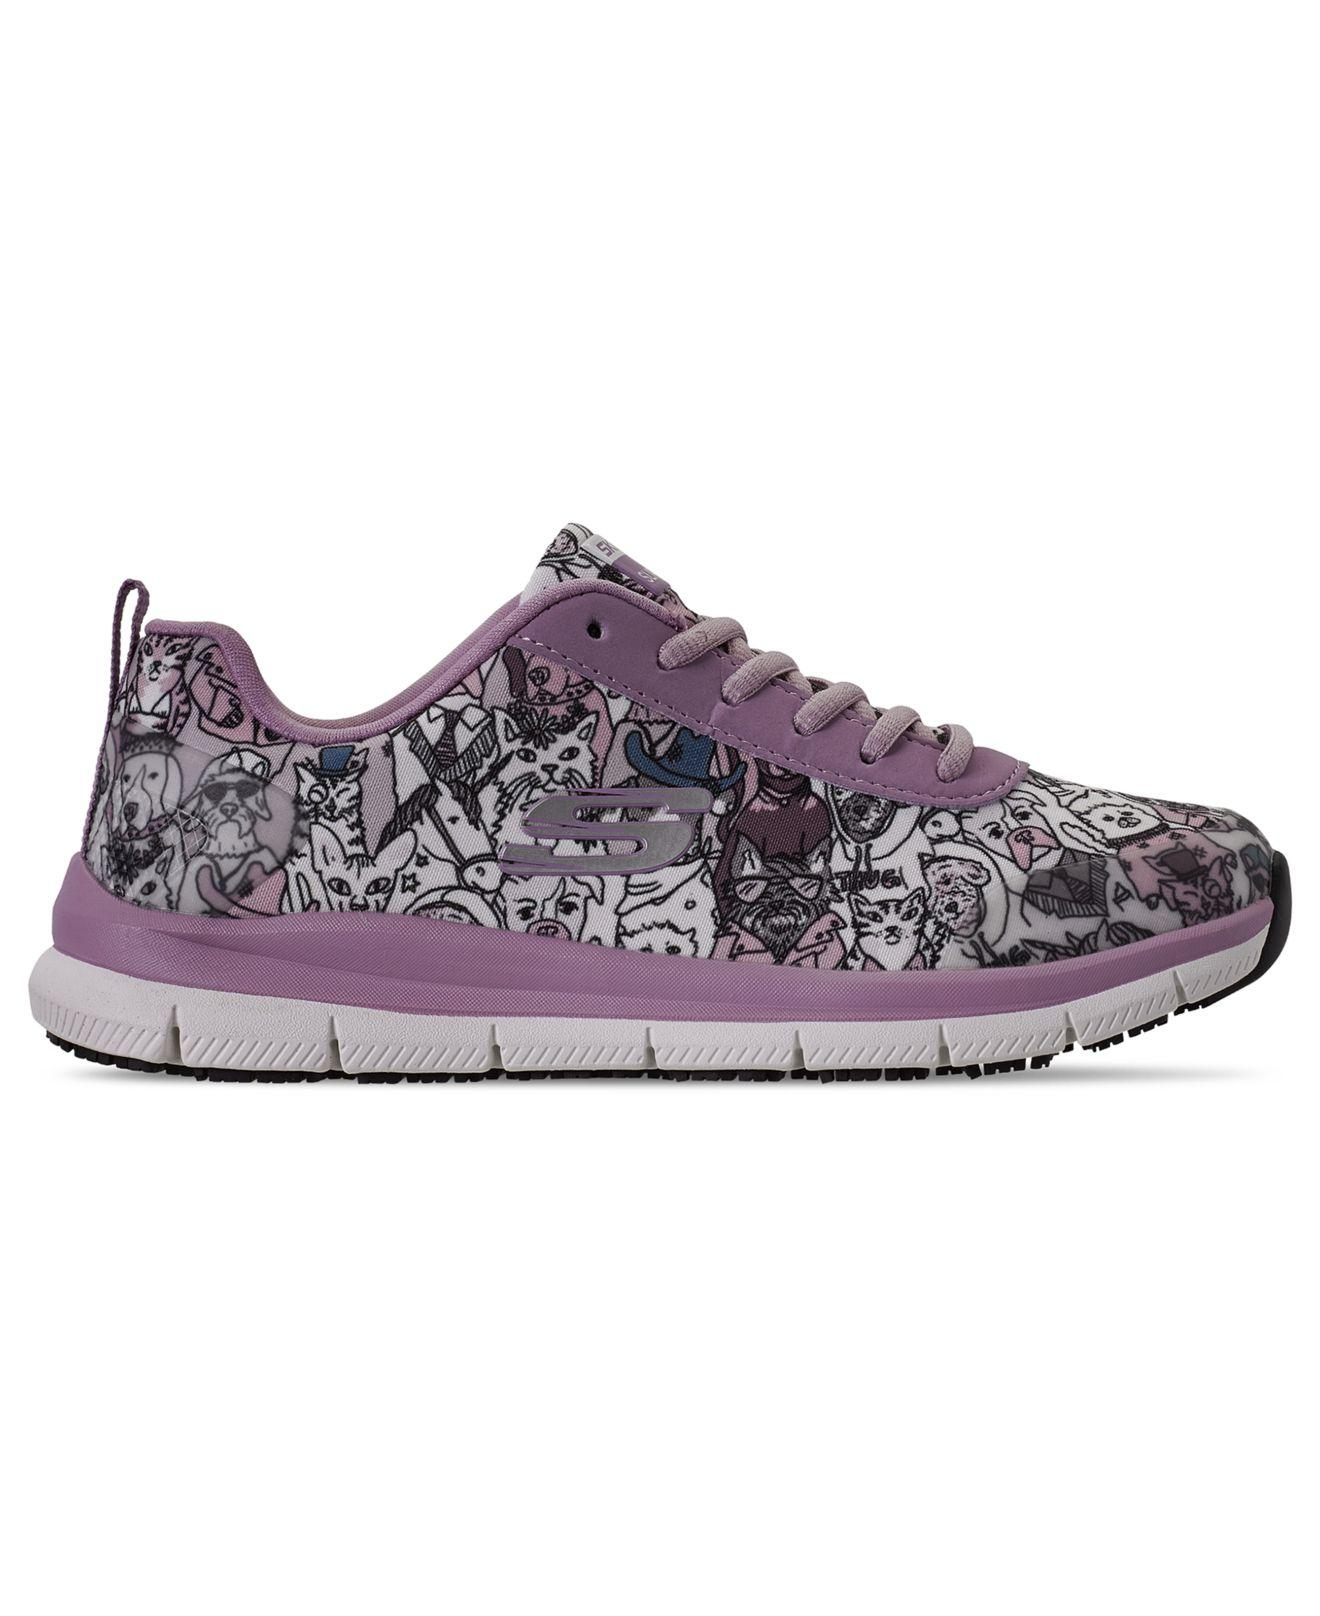 Skechers Synthetic Relaxed Fit Comfort